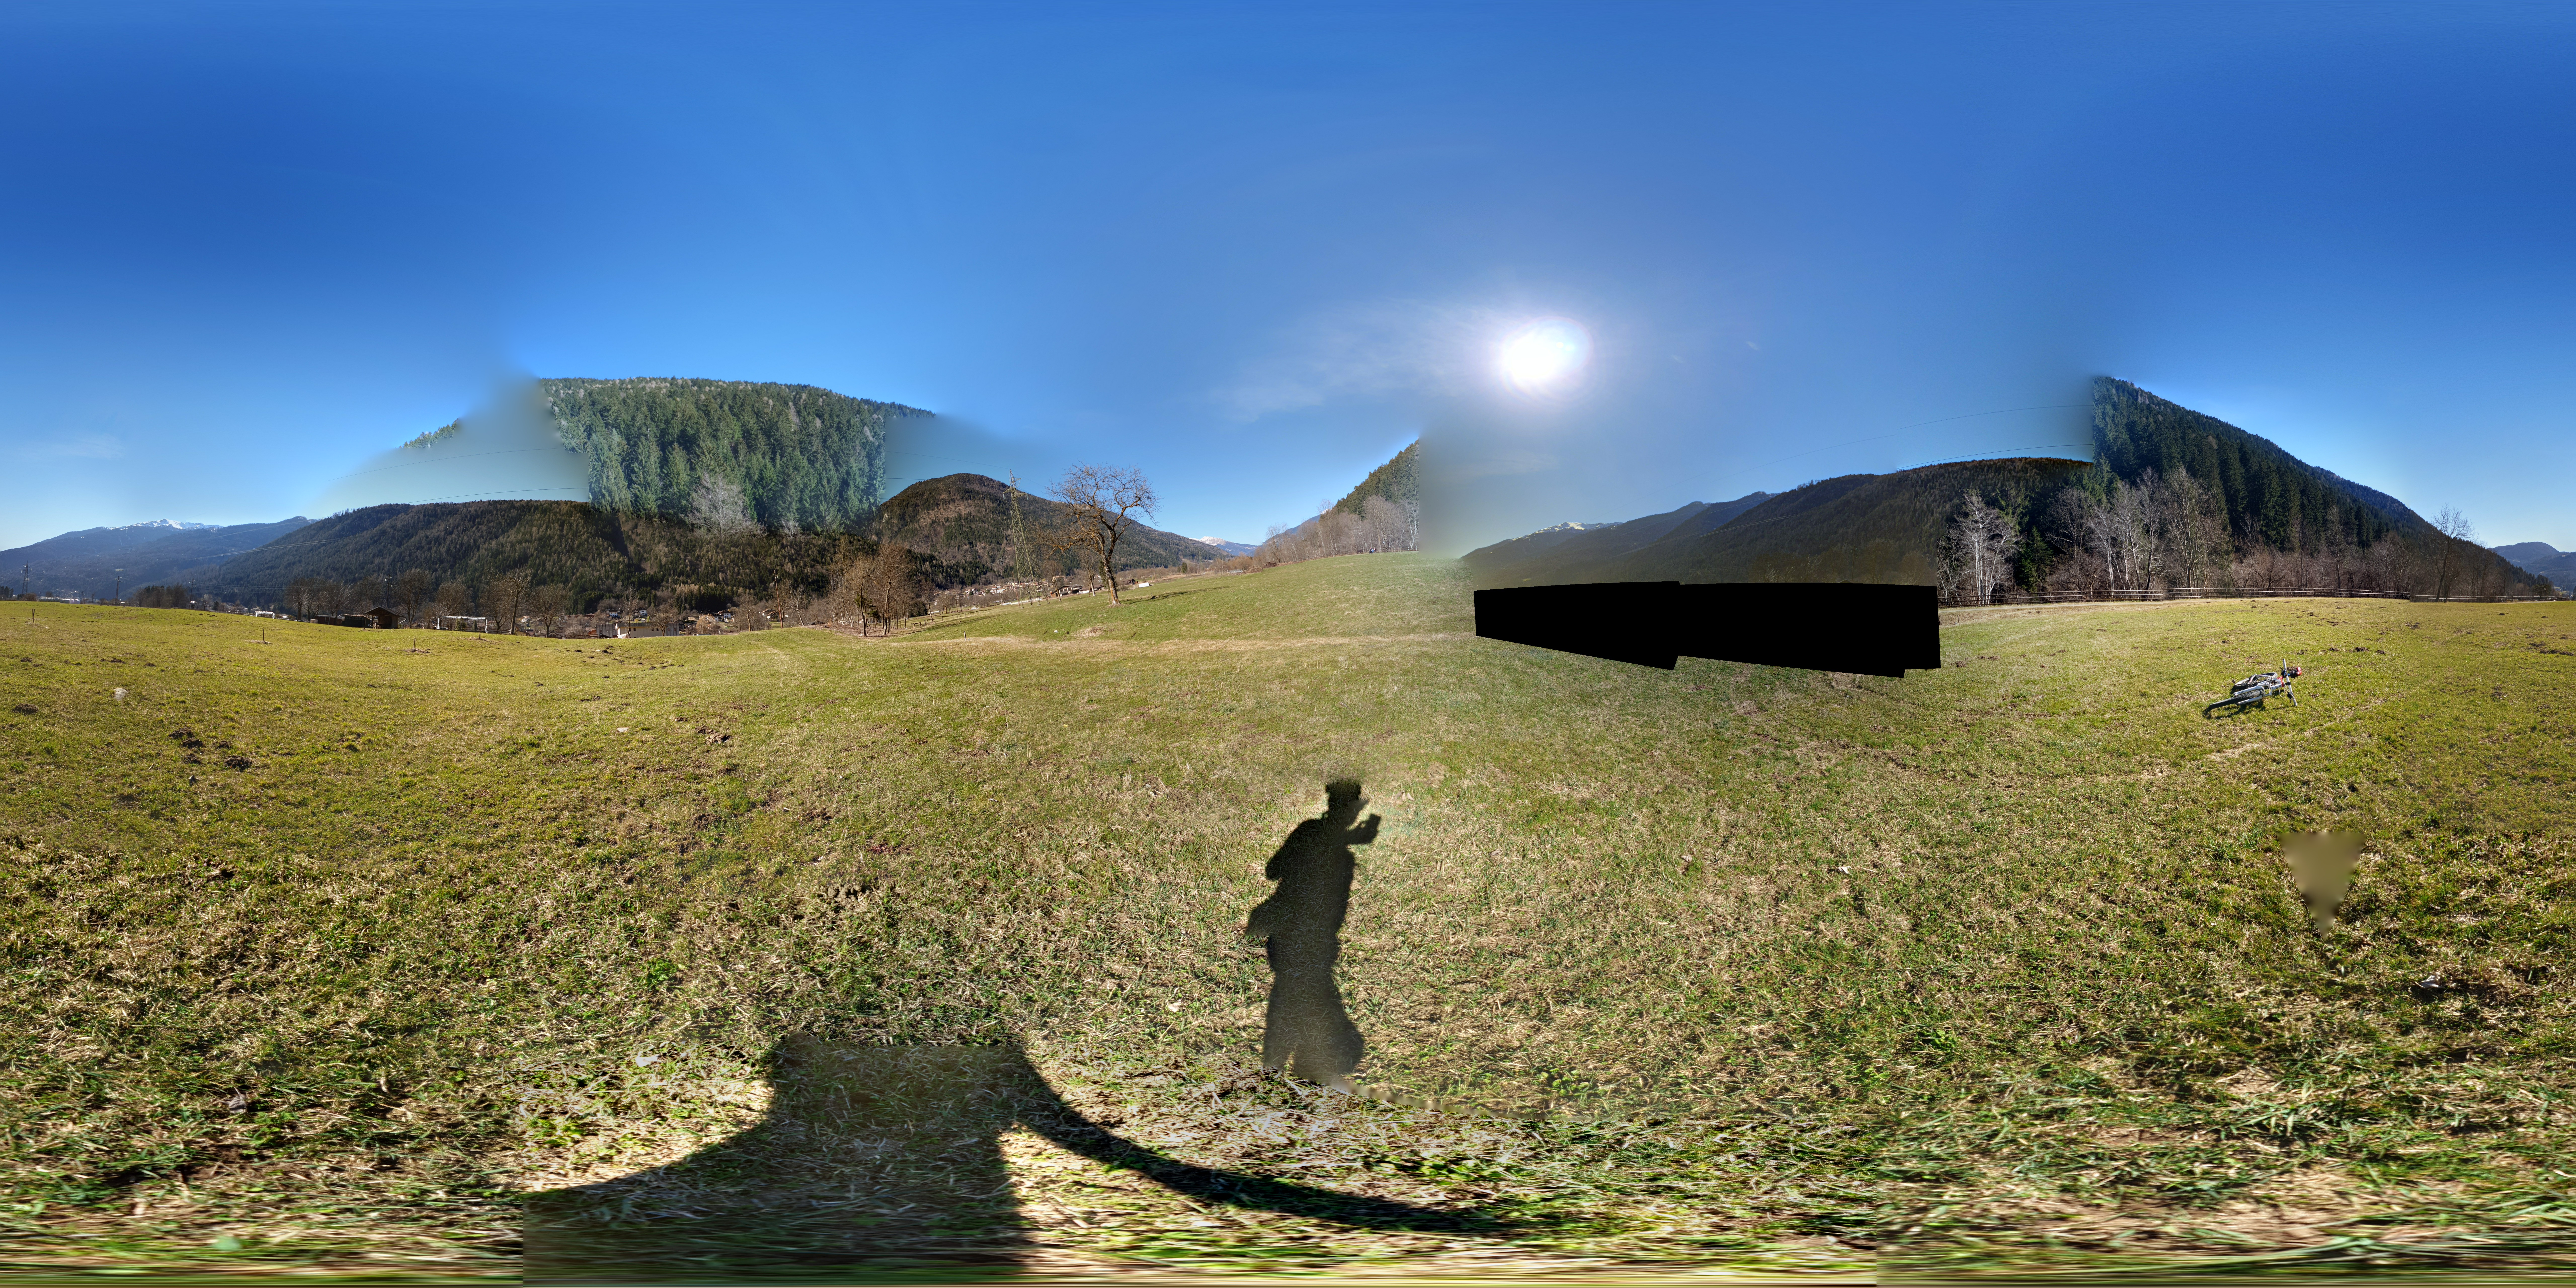 taking photospheres with streetview or google camera issues with